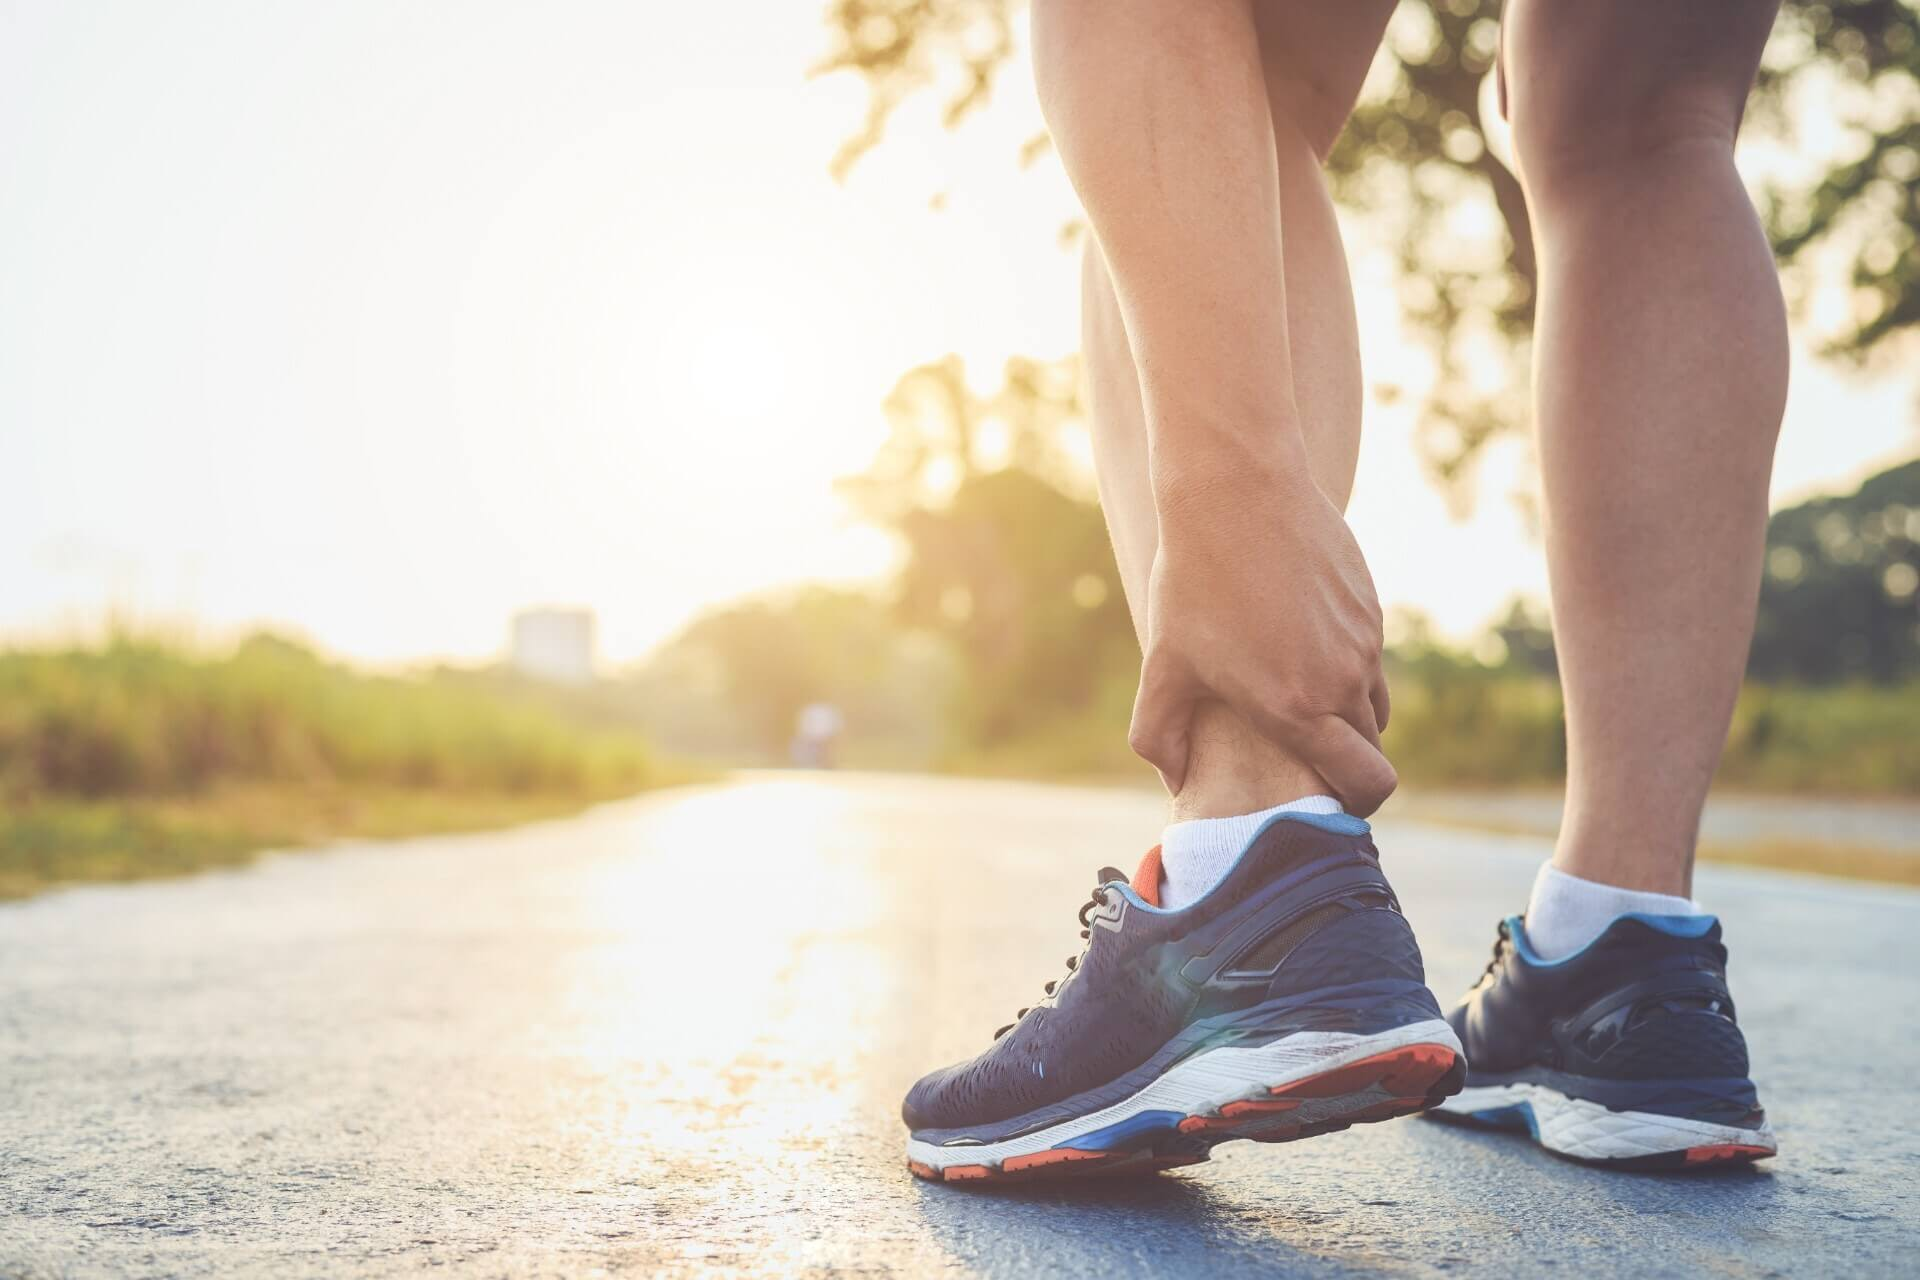 Cankle Surgery in Seattle: Is Ankle Liposuction Right For You?